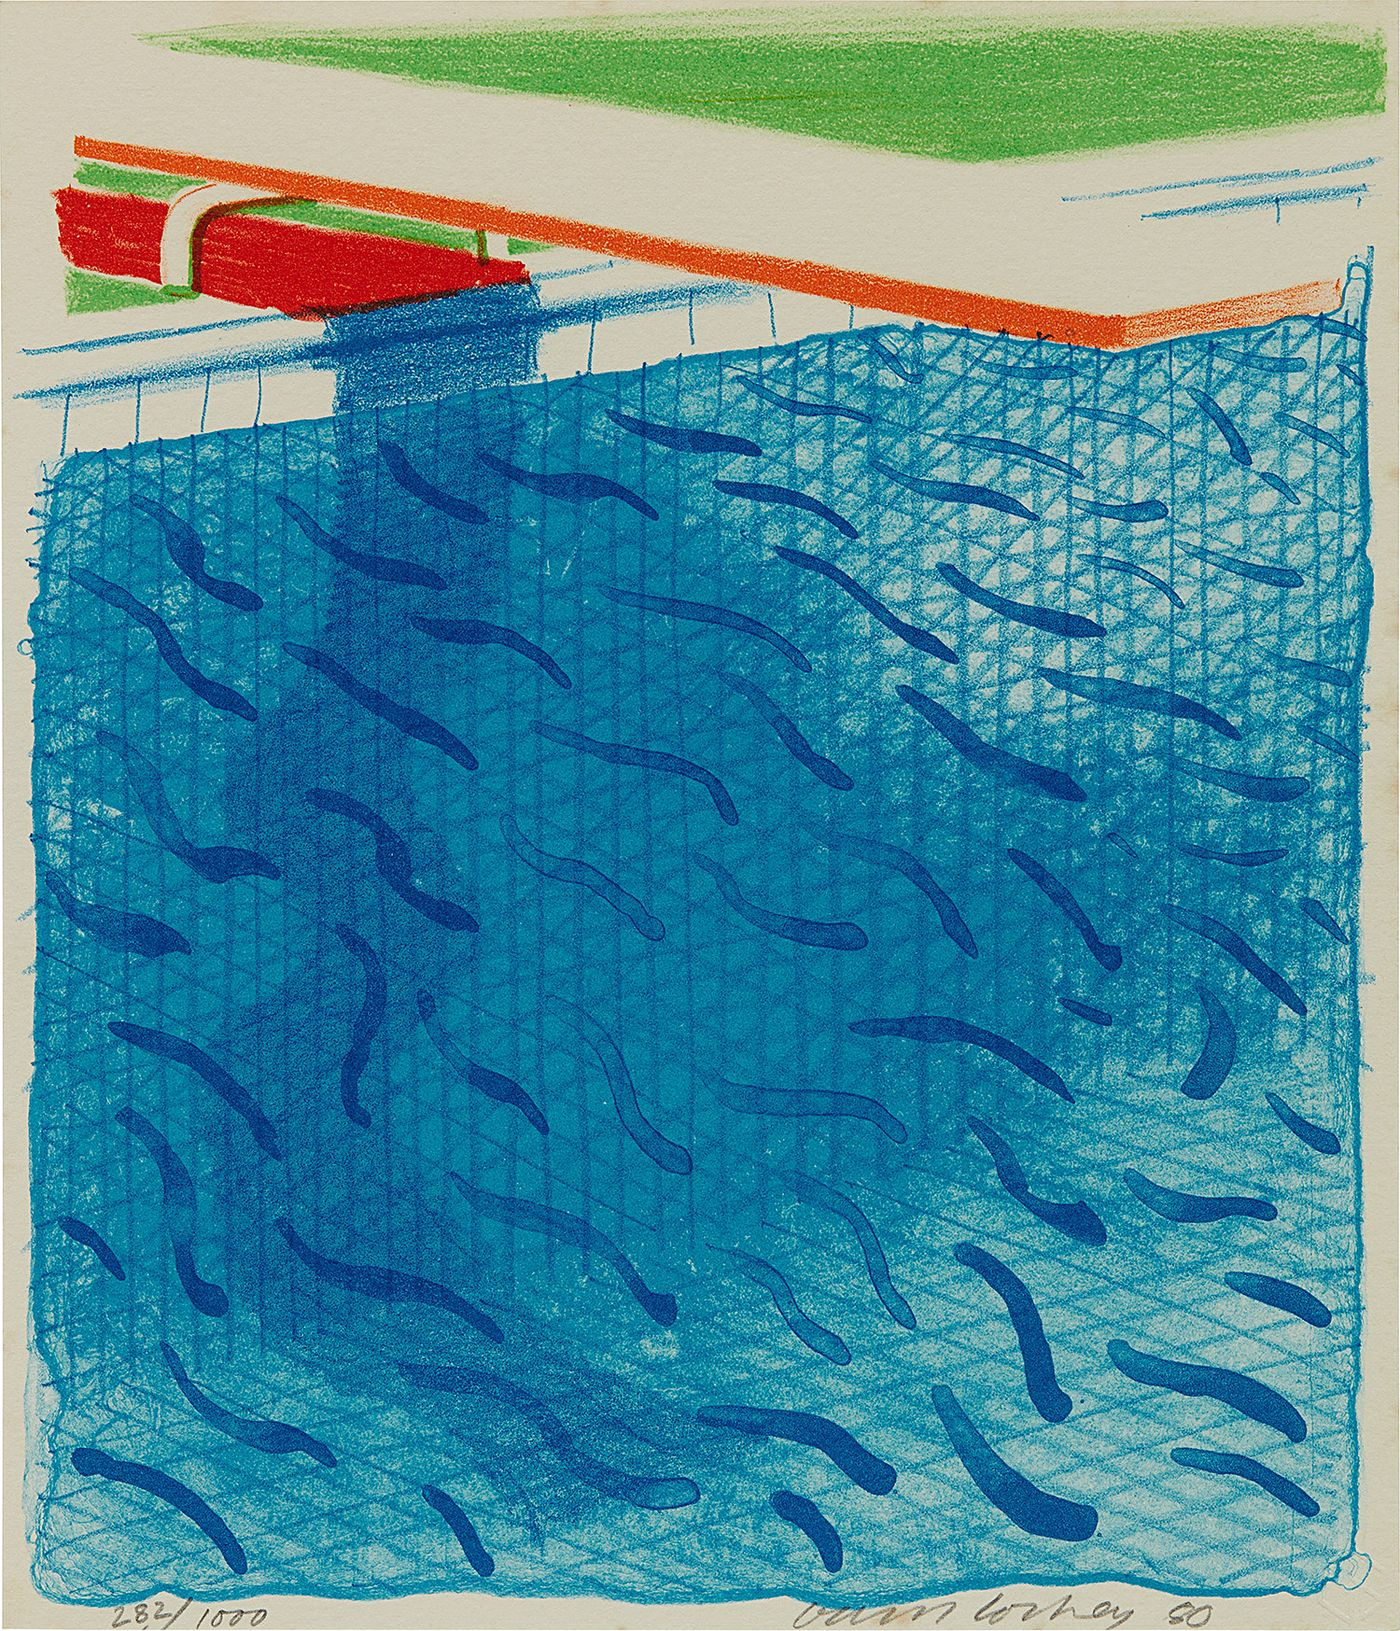 Phillips going off the deep end david hockney 39 s paper pools - David hockney swimming pool paintings ...